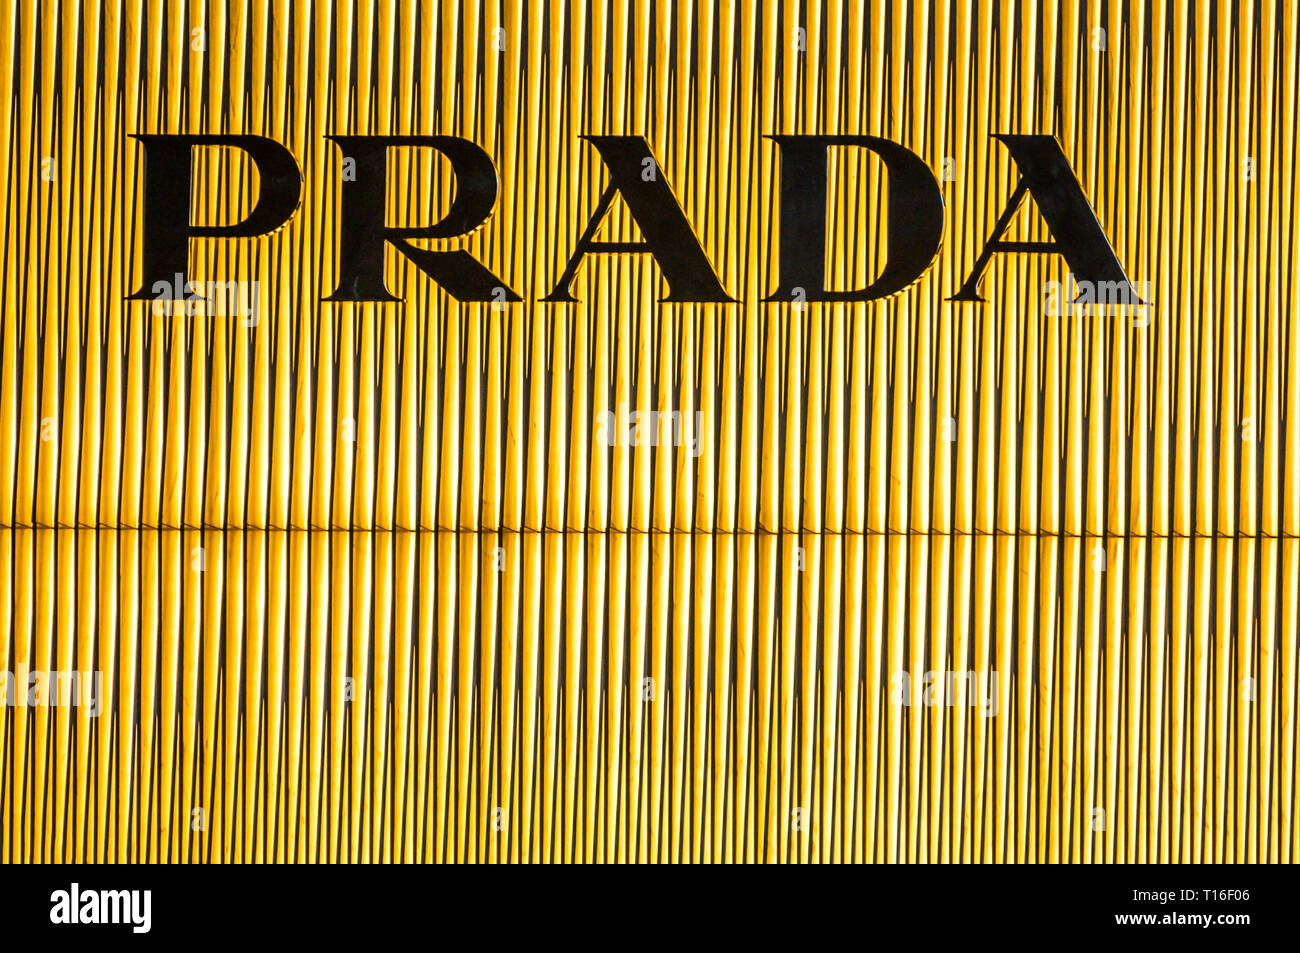 Bejing China 23.02.2019 - Prada store logo Luxury shopping center in the heart of the city Stock Photo